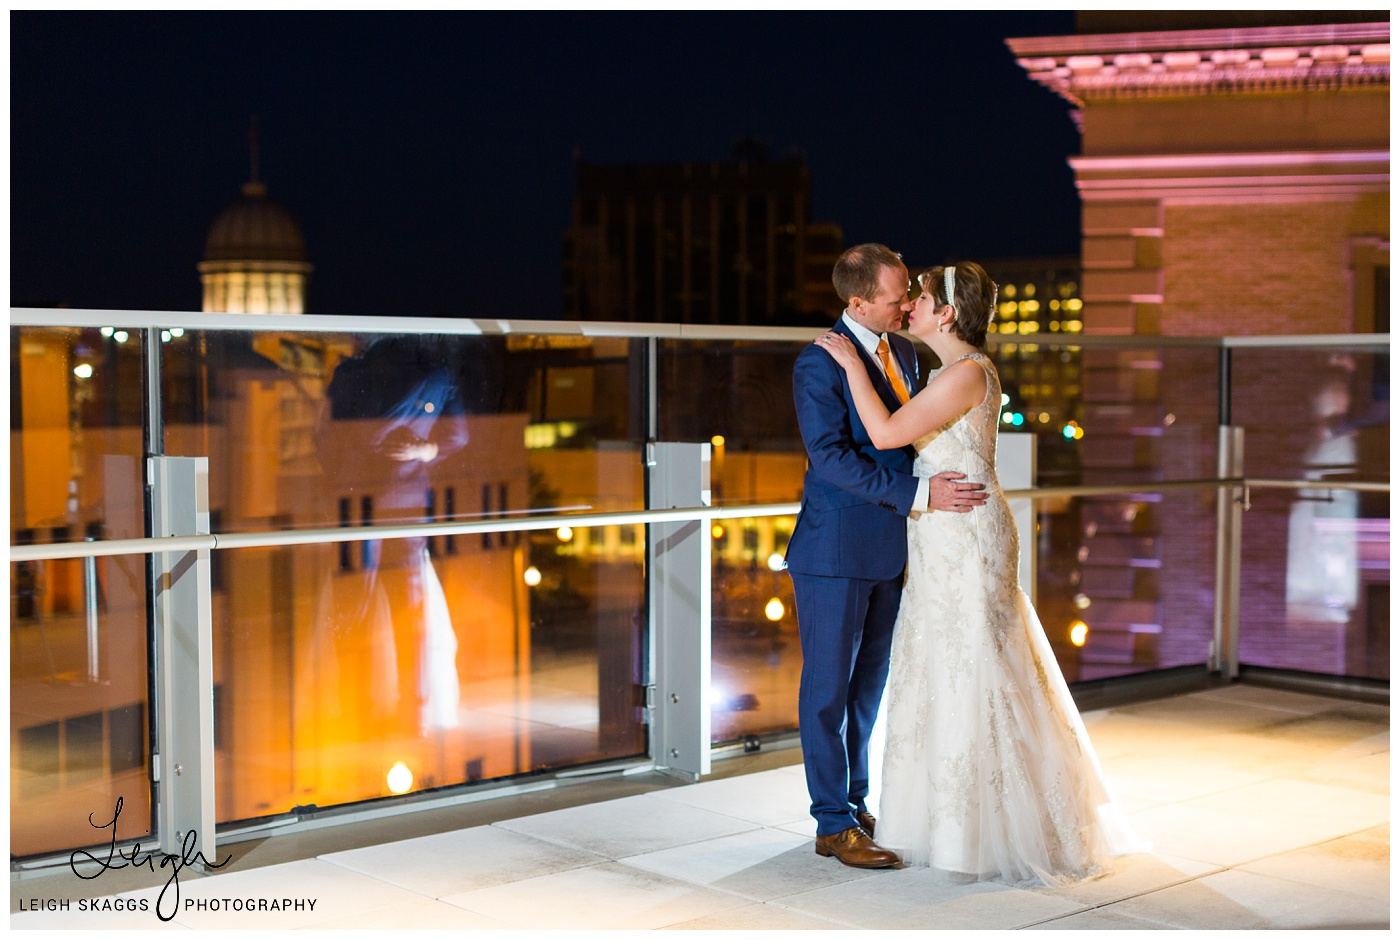 Andi & David | Slover Library Wedding